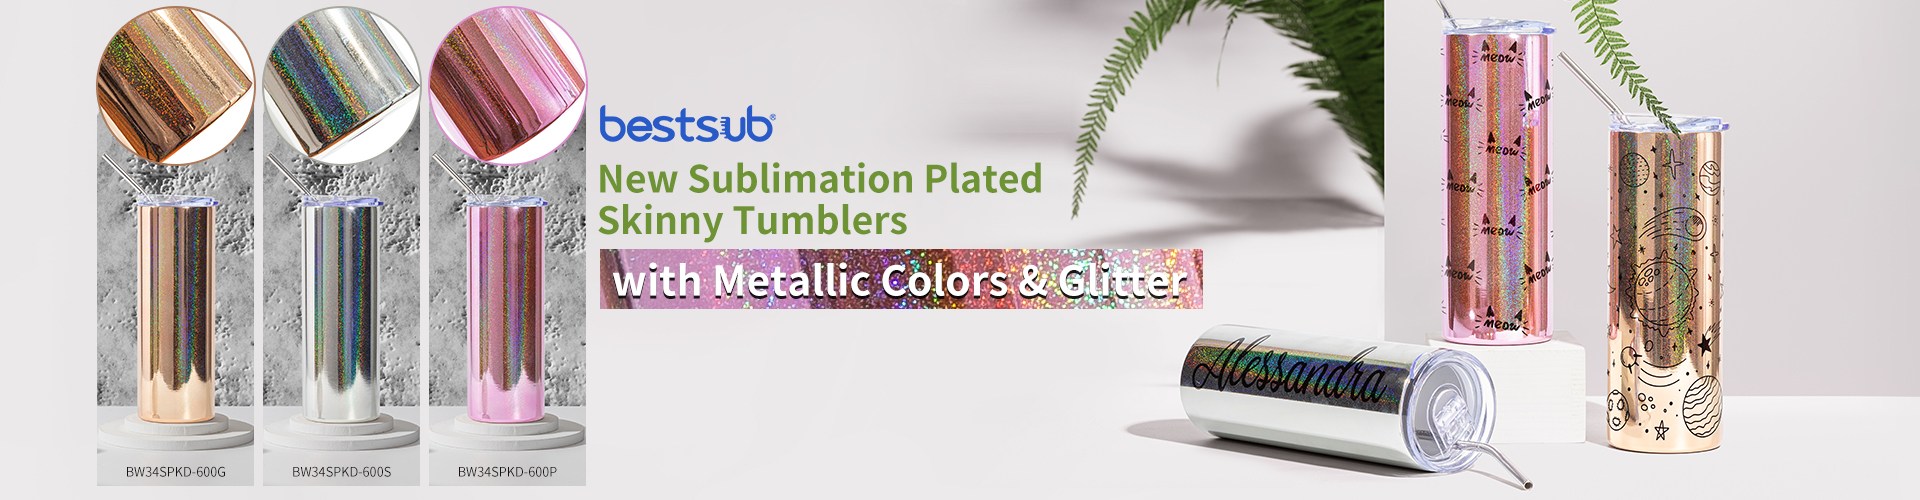 2021-10-20_New_Sublimation_Plated_Skinny_Tumblers_with_Metallic_Colors_Glitter_new_web